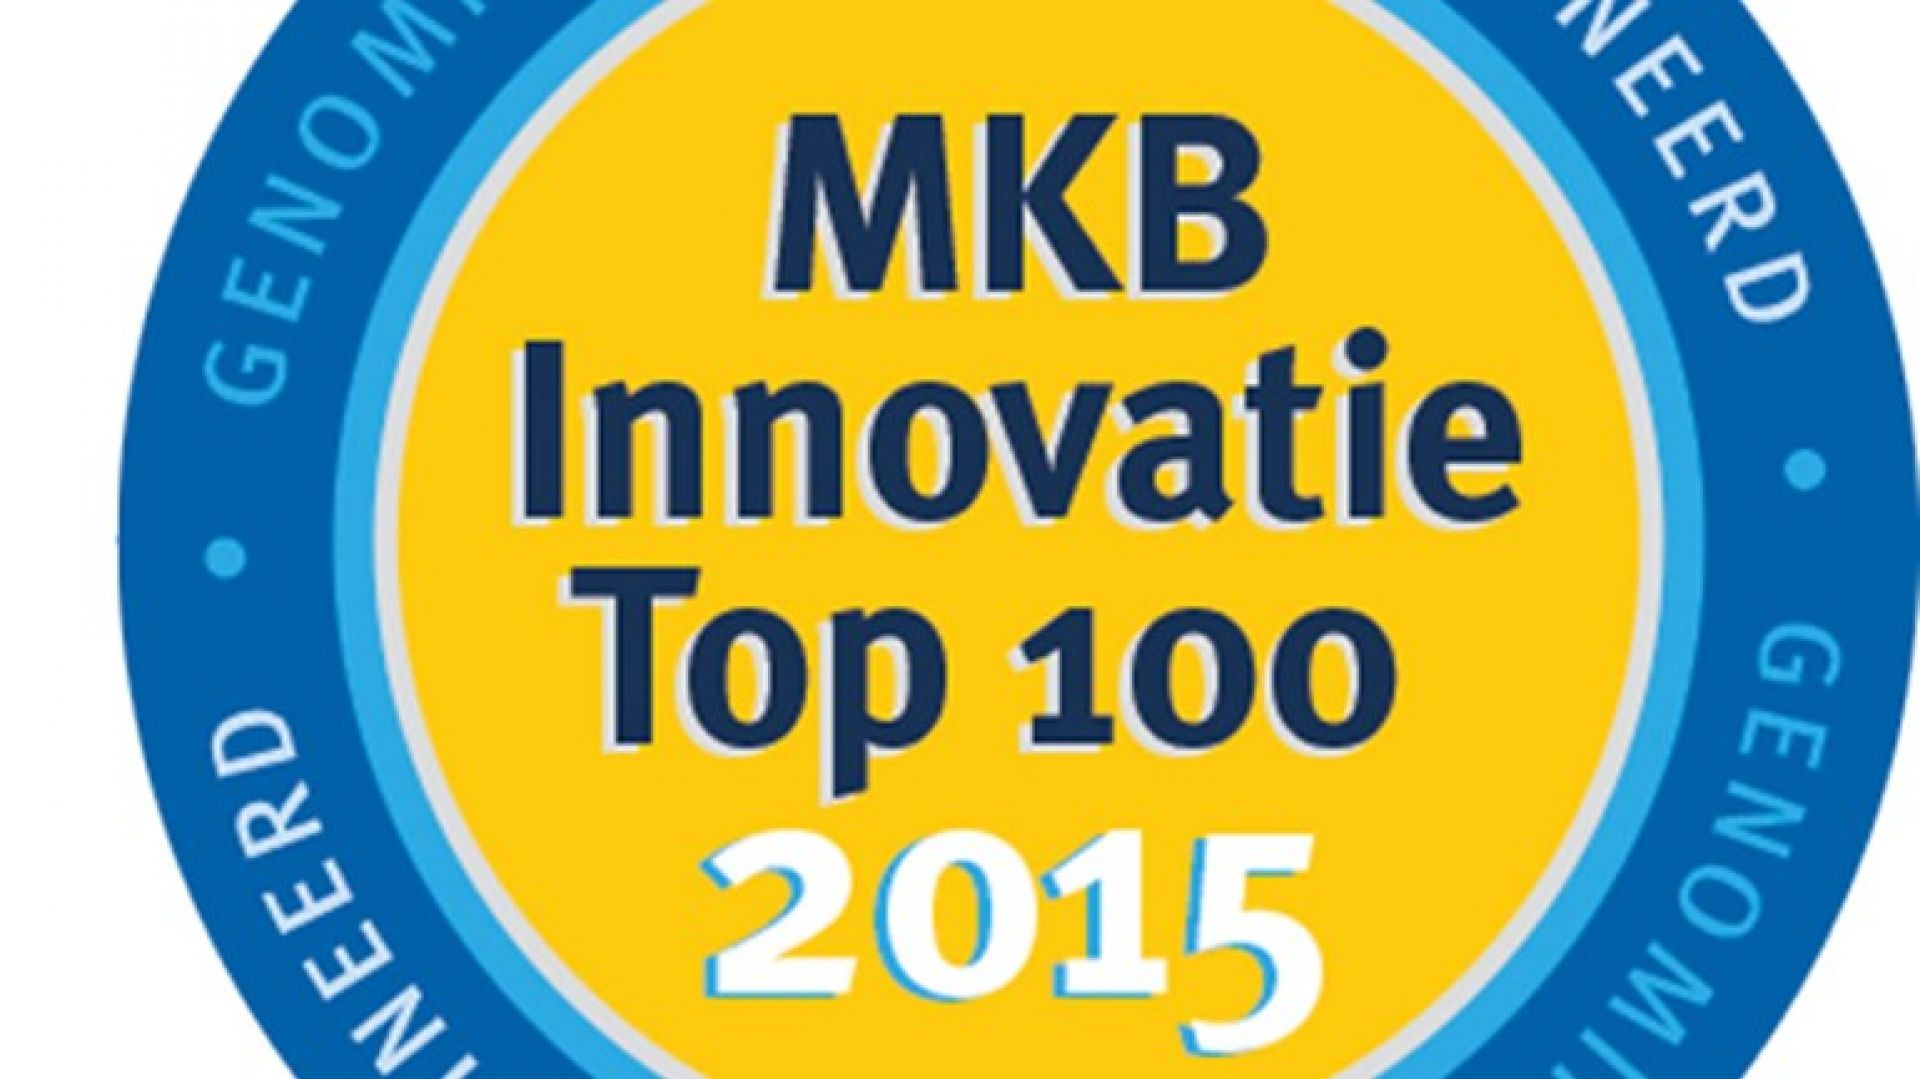 Innovatie top 100 MKB KvK 2015